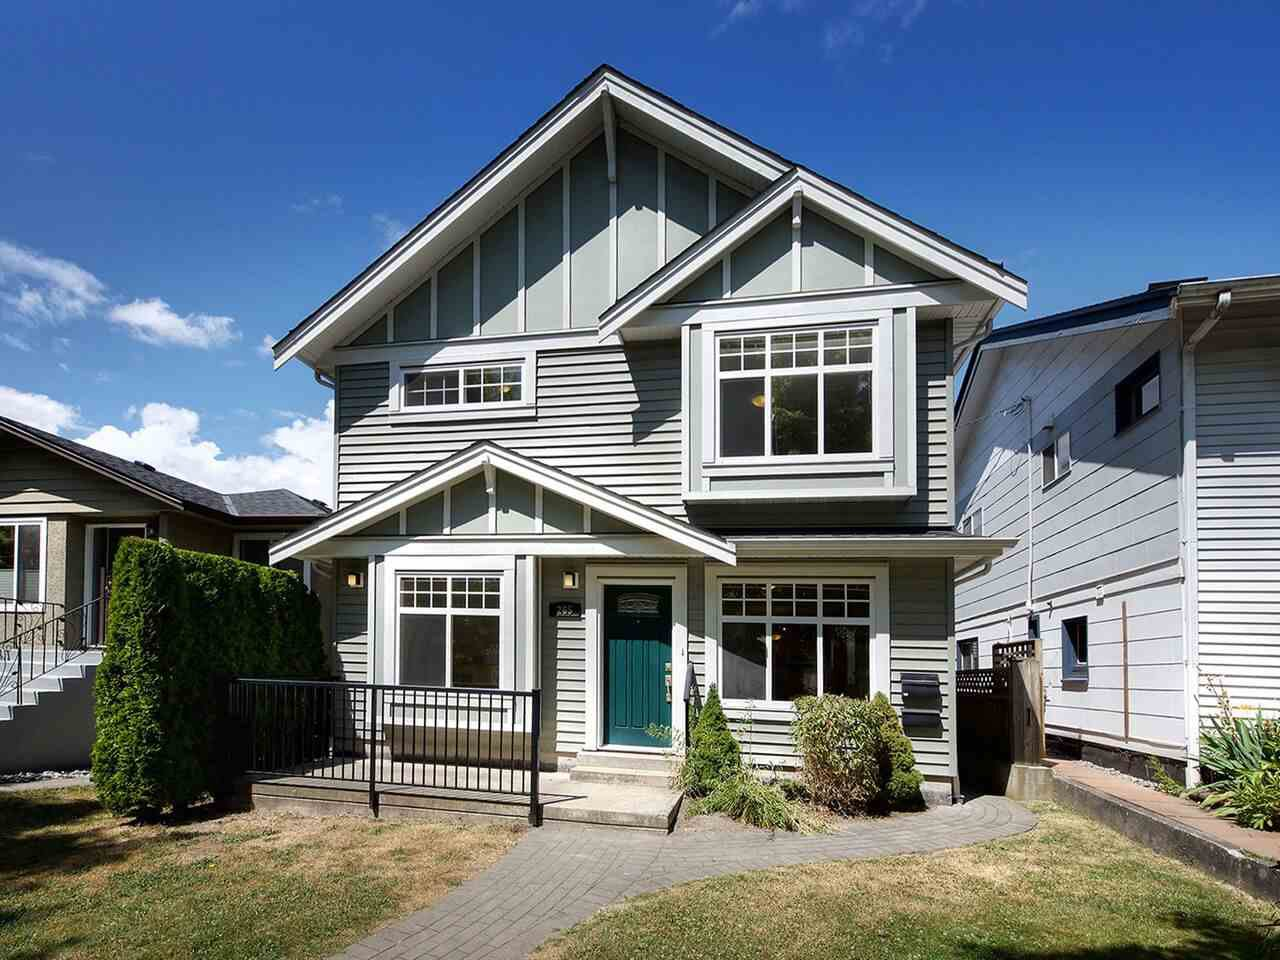 Main Photo: 265 E 46TH Avenue in Vancouver: Main House for sale (Vancouver East)  : MLS®# R2188878